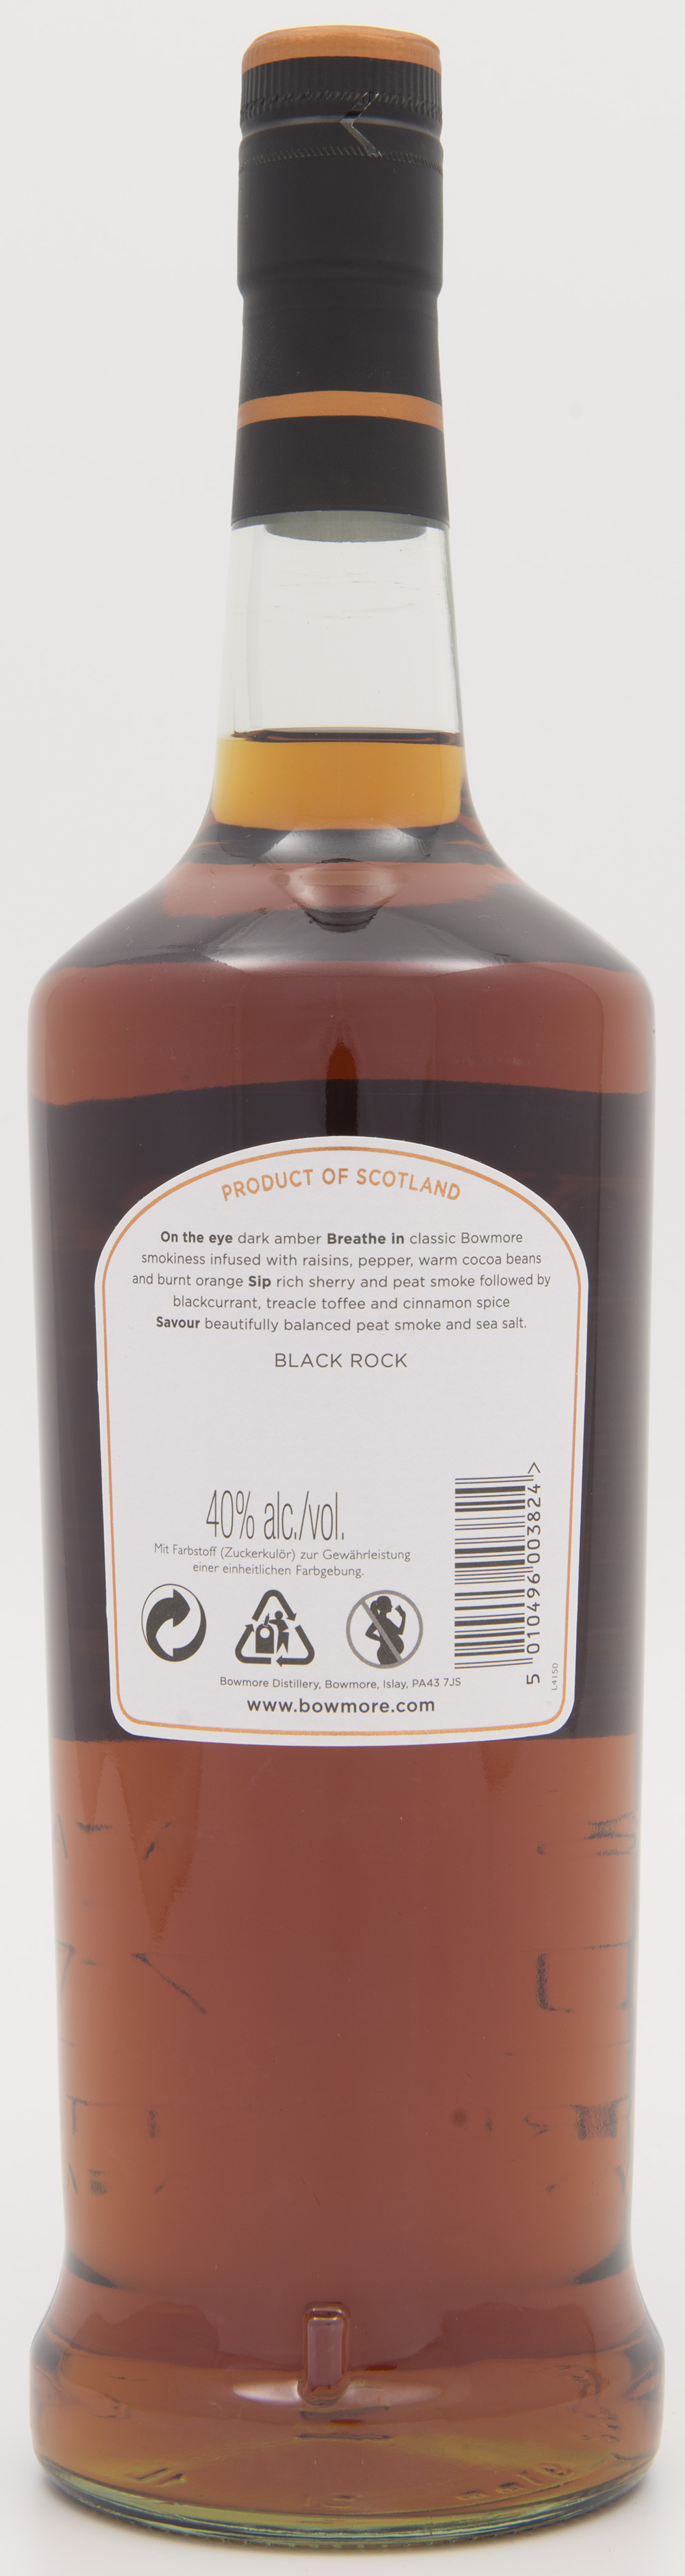 Billede: DSC_3843 Bowmore Black Rock - bottle back.jpg